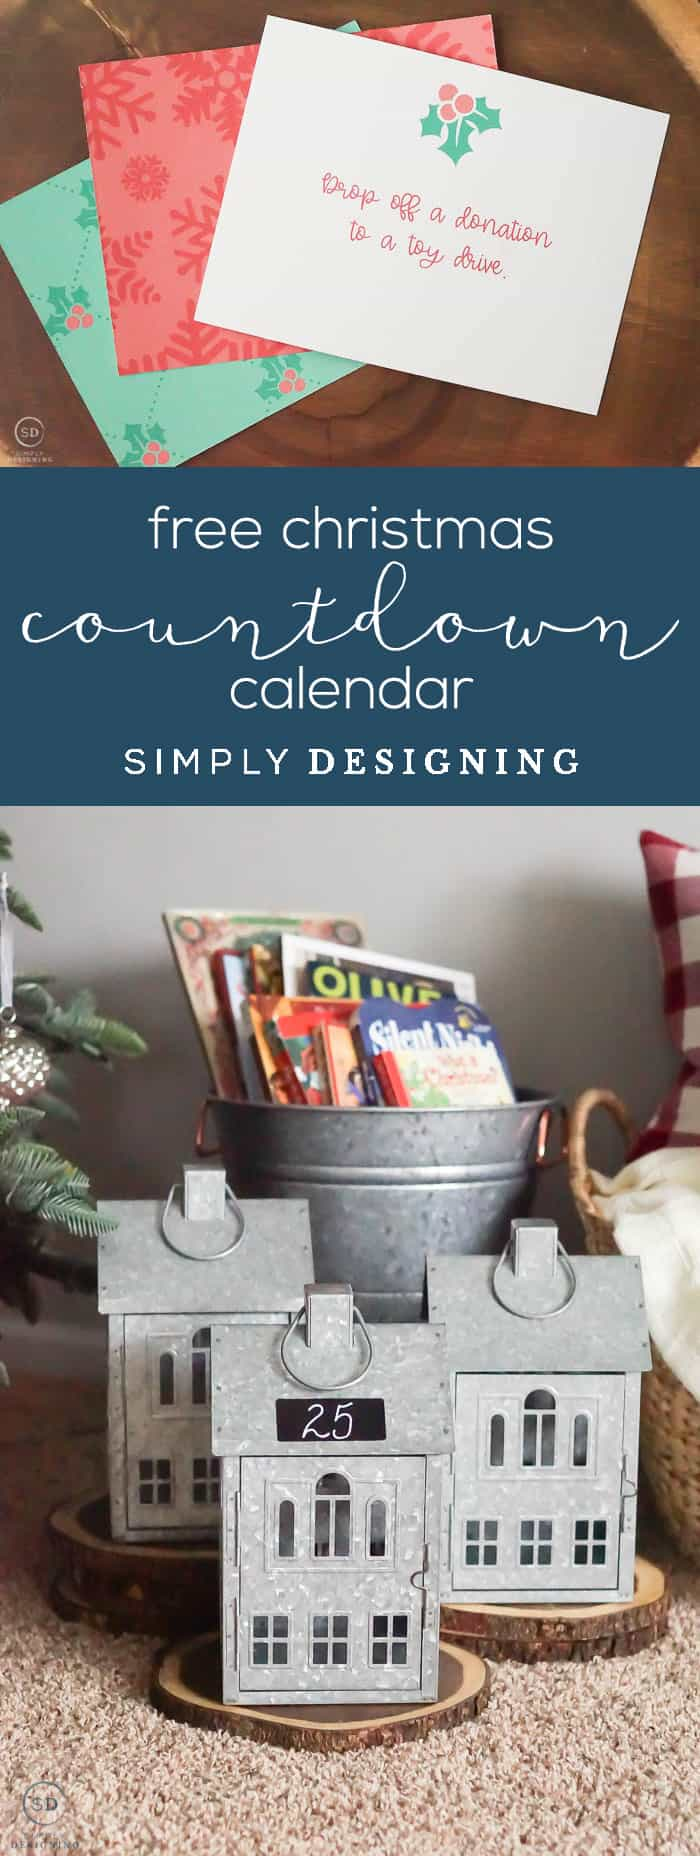 Free Printable Countdown Calendar - #ad #bhghowiholiday #bhglivebetter #bhgatwalmart @BHGLiveBetter